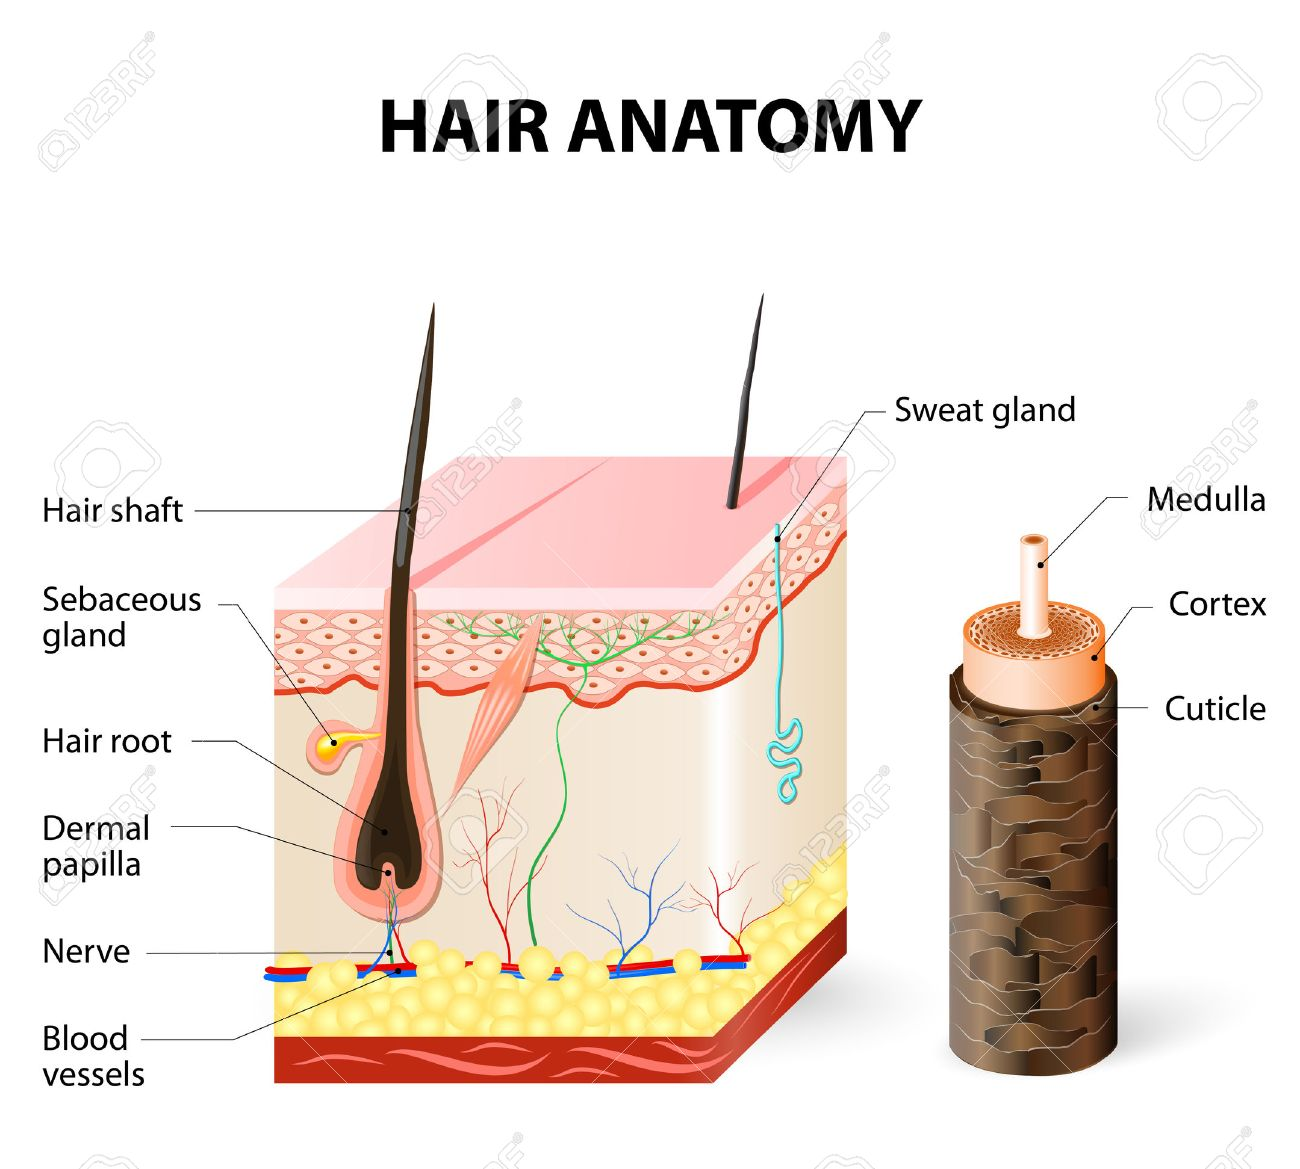 Hair Anatomy The Hair Shaft Grows From The Hair Follicle Consisting